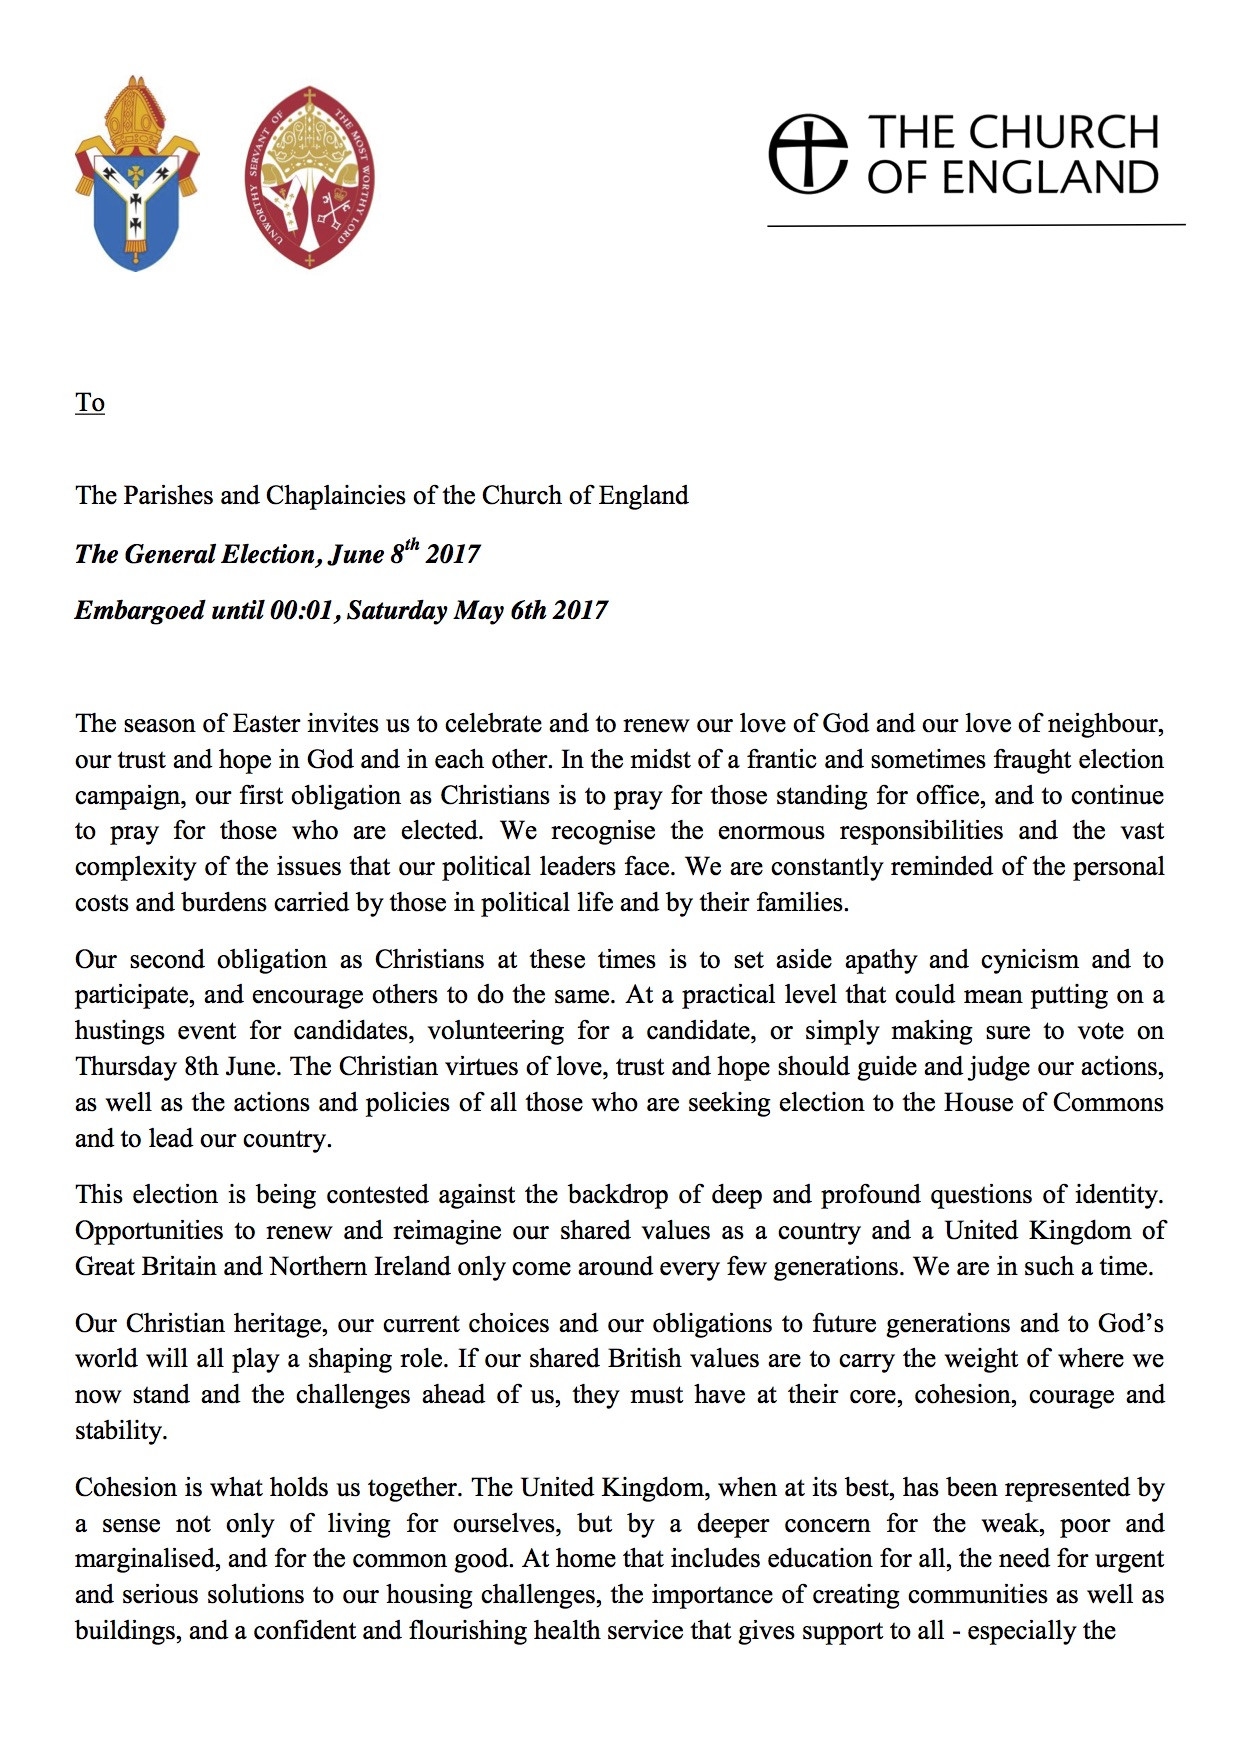 General Election Letter From The Archbishop Of Canterbury